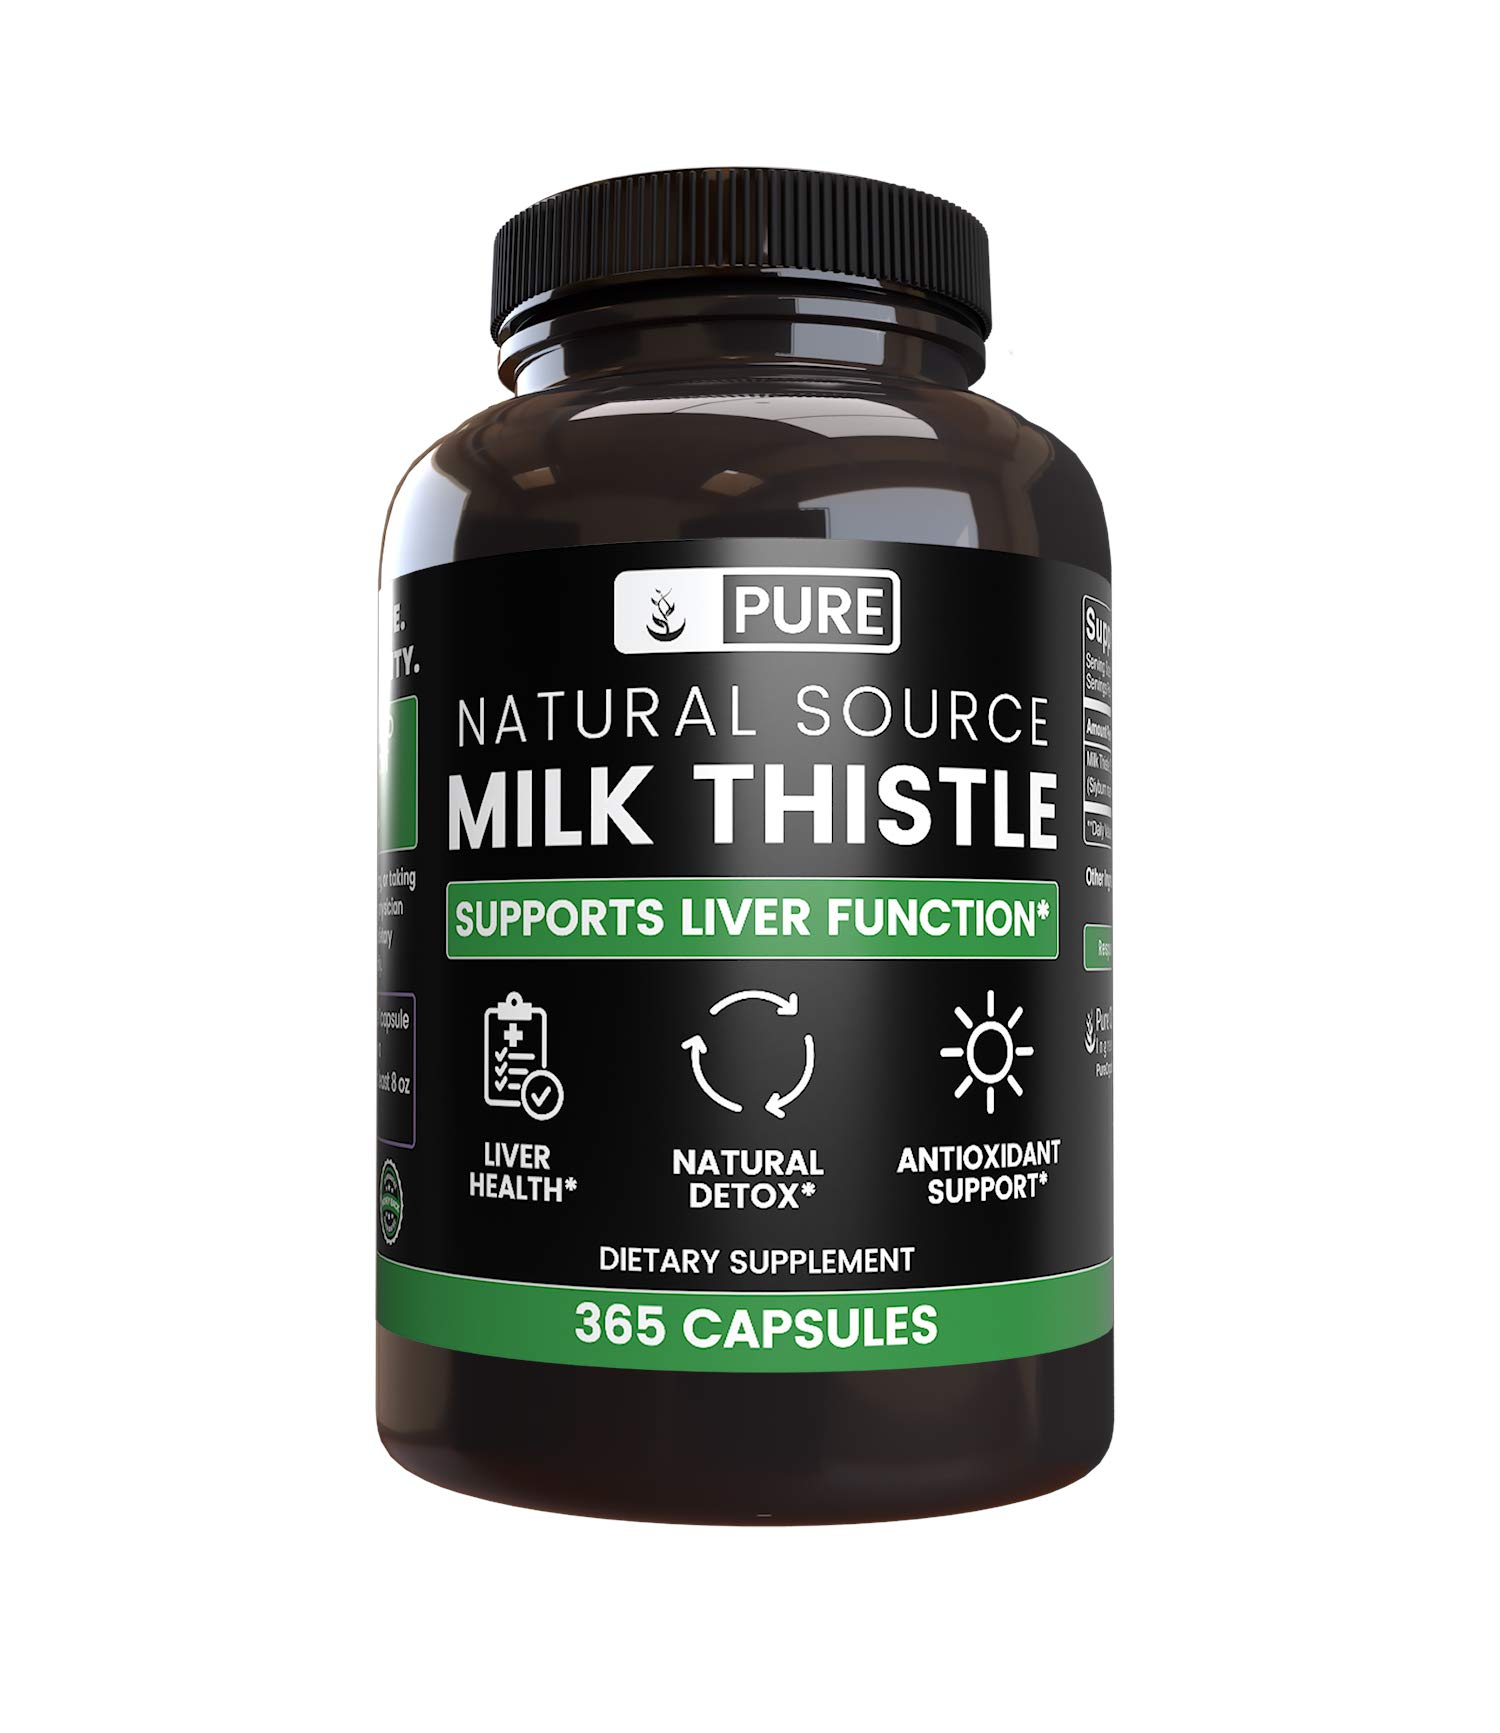 Natural Source Milk Thistle, 365 Capsules, 1-Year Supply, No Magnesium or Rice Filler, 4X Potency, Free of Gluten, Made in US, 320 mg of Undiluted Milk Thistle Extract with No Additives